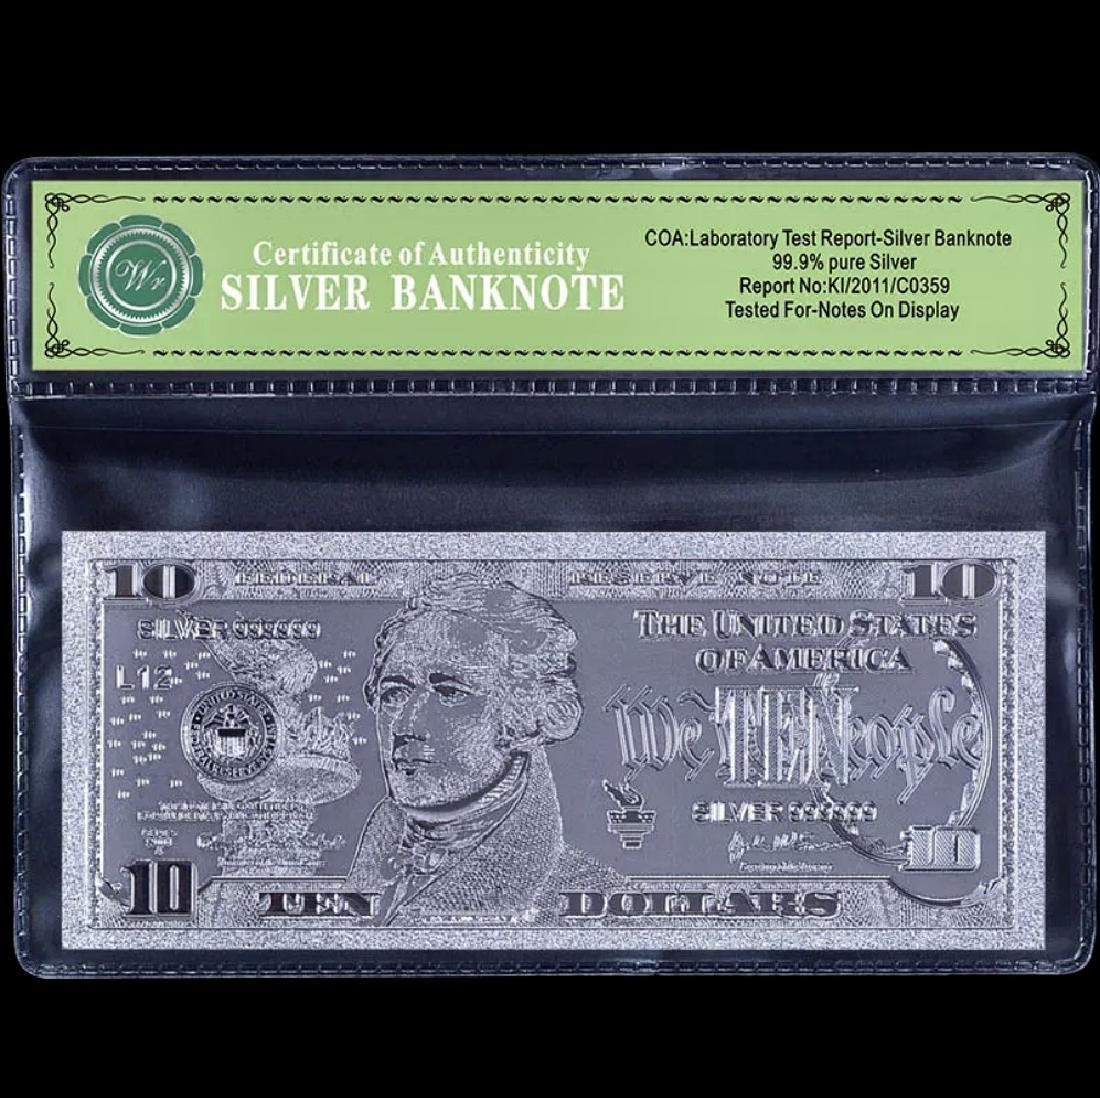 Uncirculated 99.9 % Silver Banknote $10 Bill